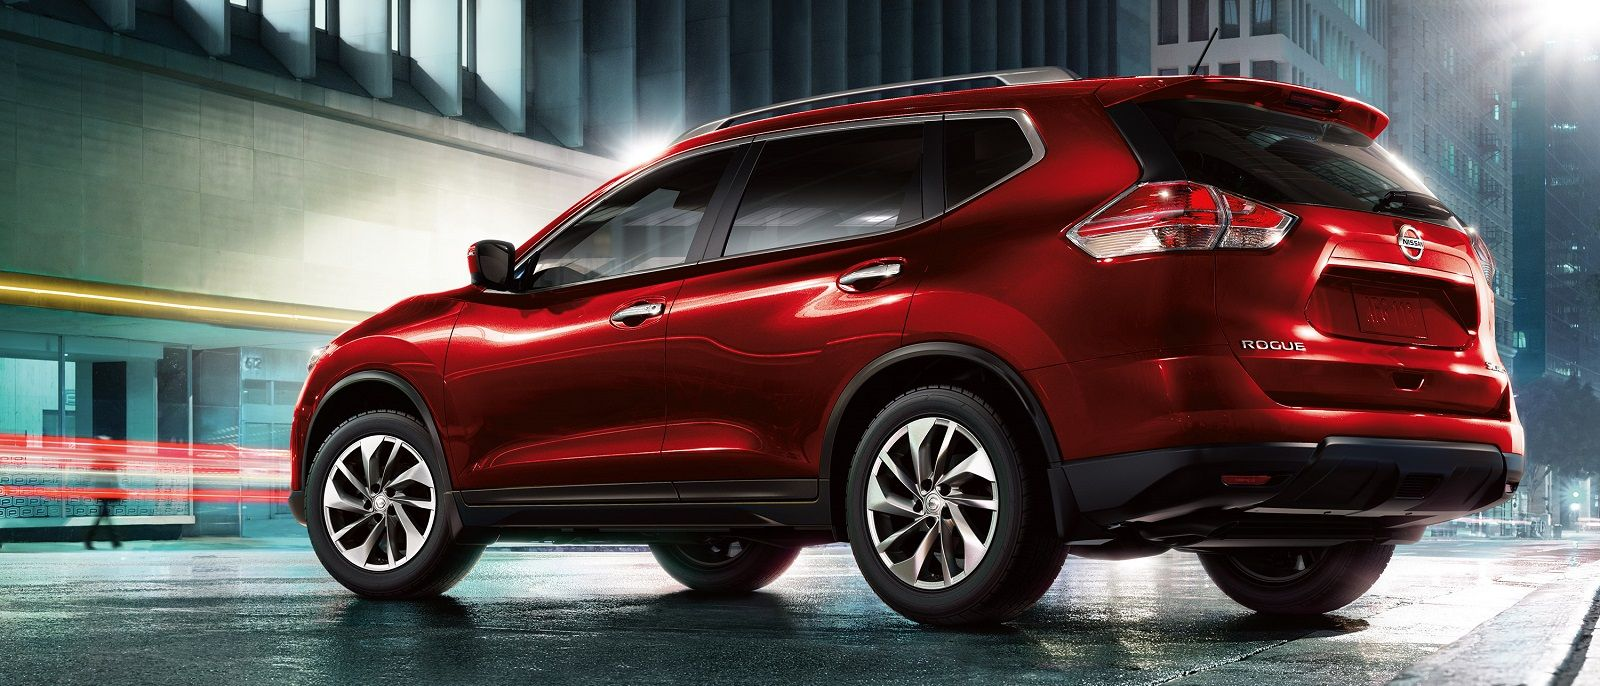 the 2016 nissan rogue has arrived at andy mohr avon nissan andy mohr avon nissan prlog. Black Bedroom Furniture Sets. Home Design Ideas